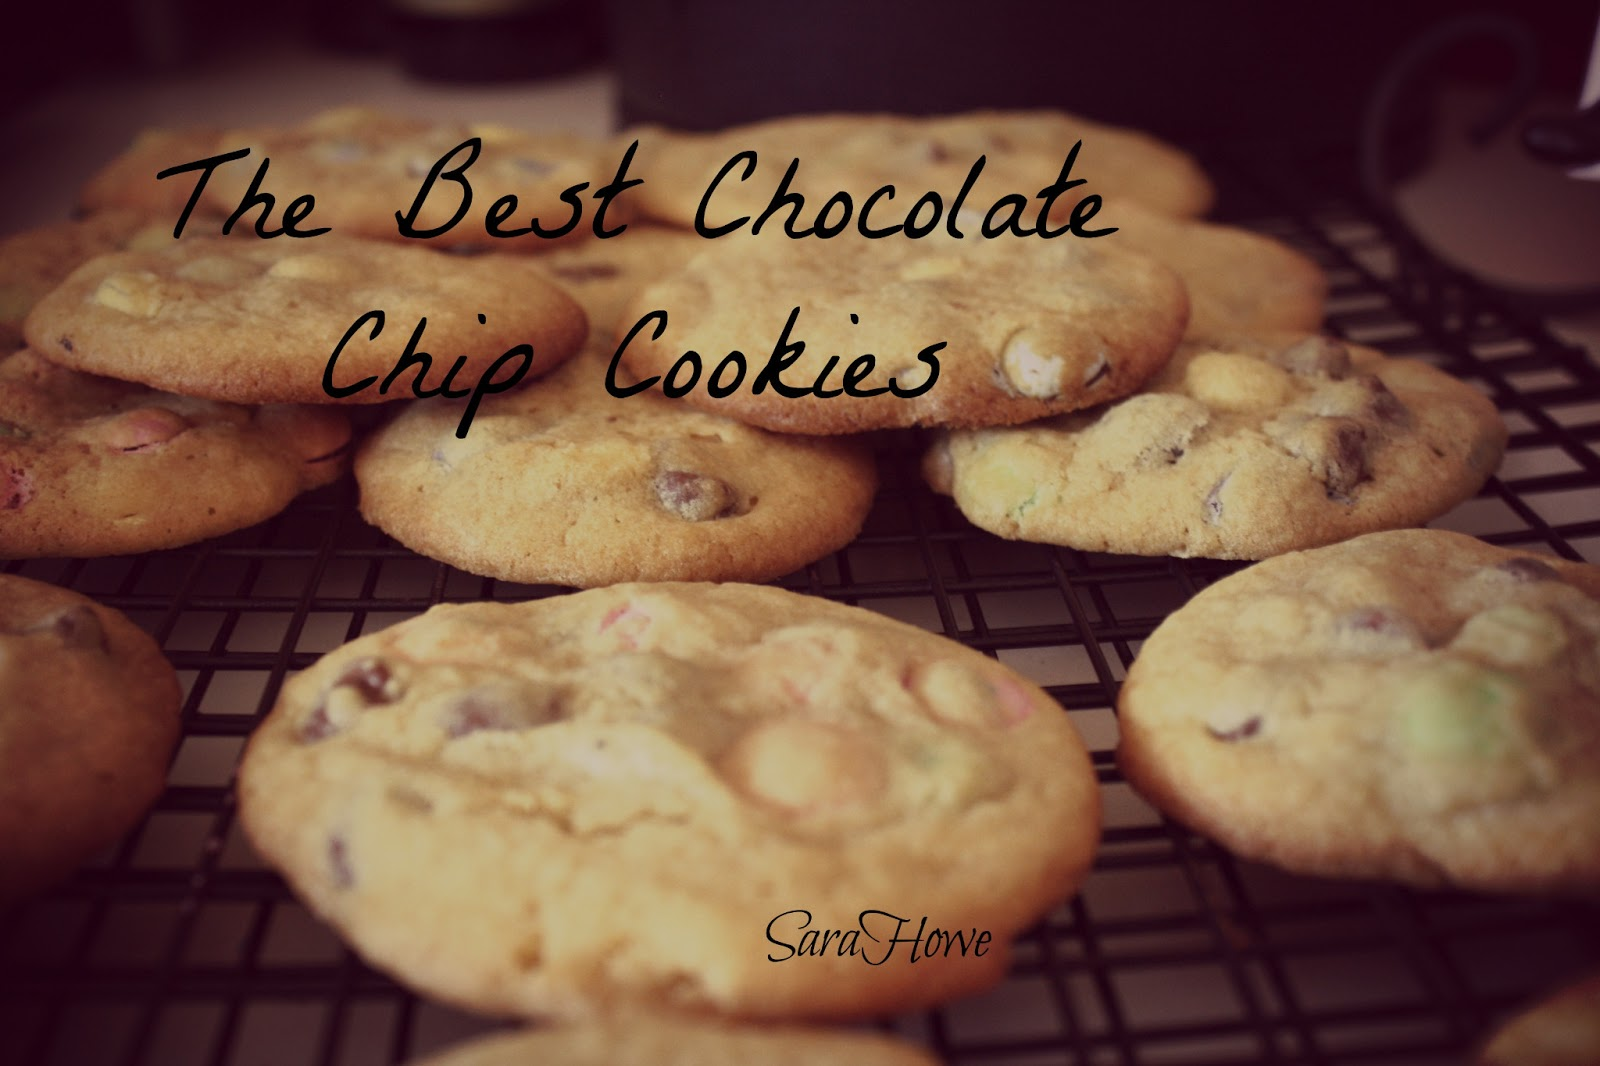 Sara's Home Life: The Best Chocolate Chip Cookies